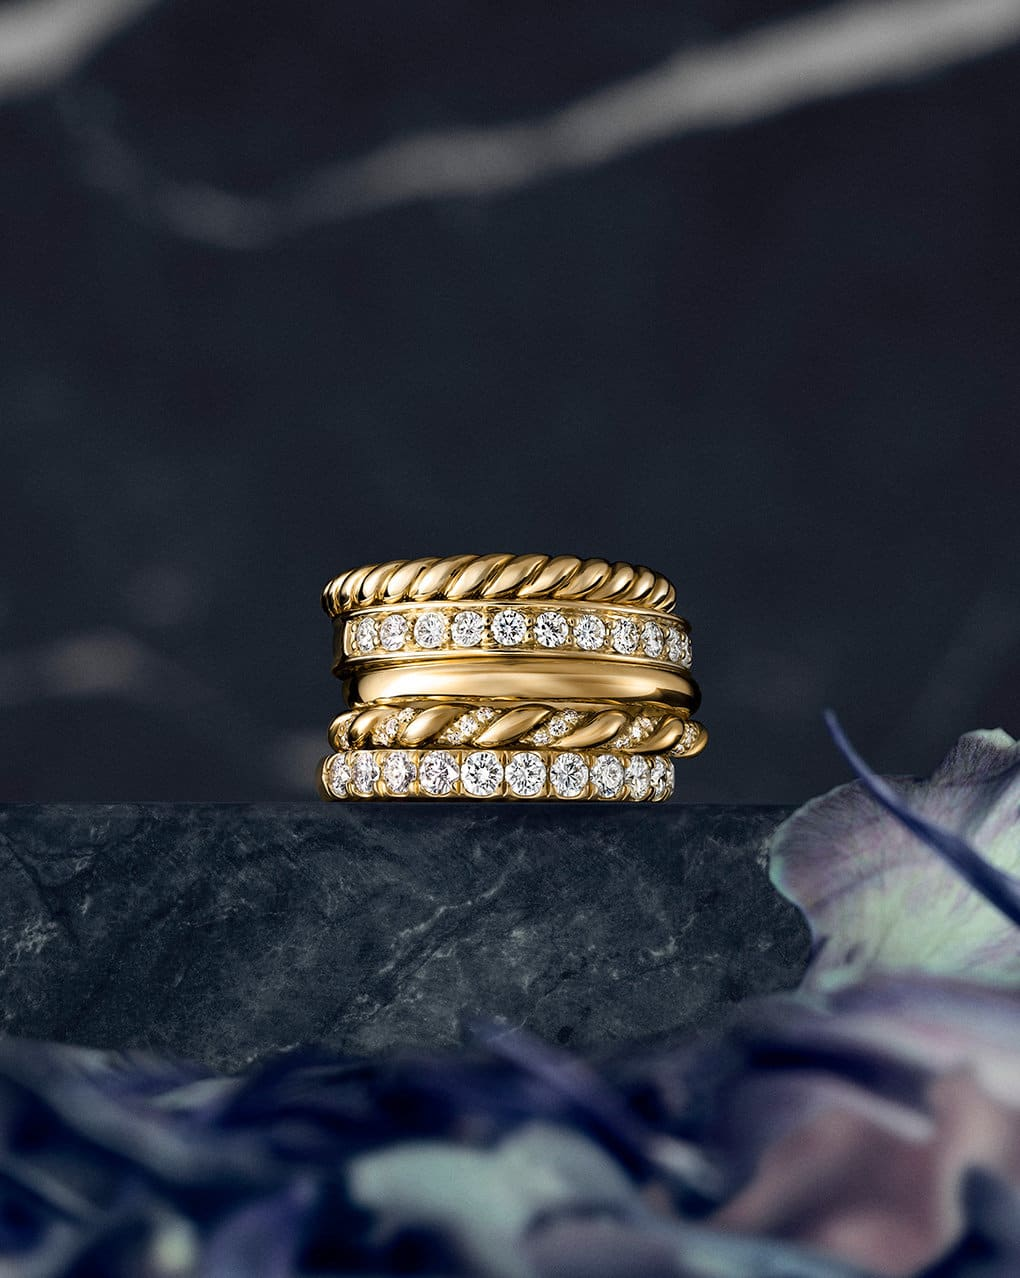 A color photograph shows a stack of five 18K yellow gold wedding bands with or without diamonds from the DY Unity and DY Eden collection. The stack of rings sits atop a dark, marbled stone surface with a dark background and purple flowers in the foreground.